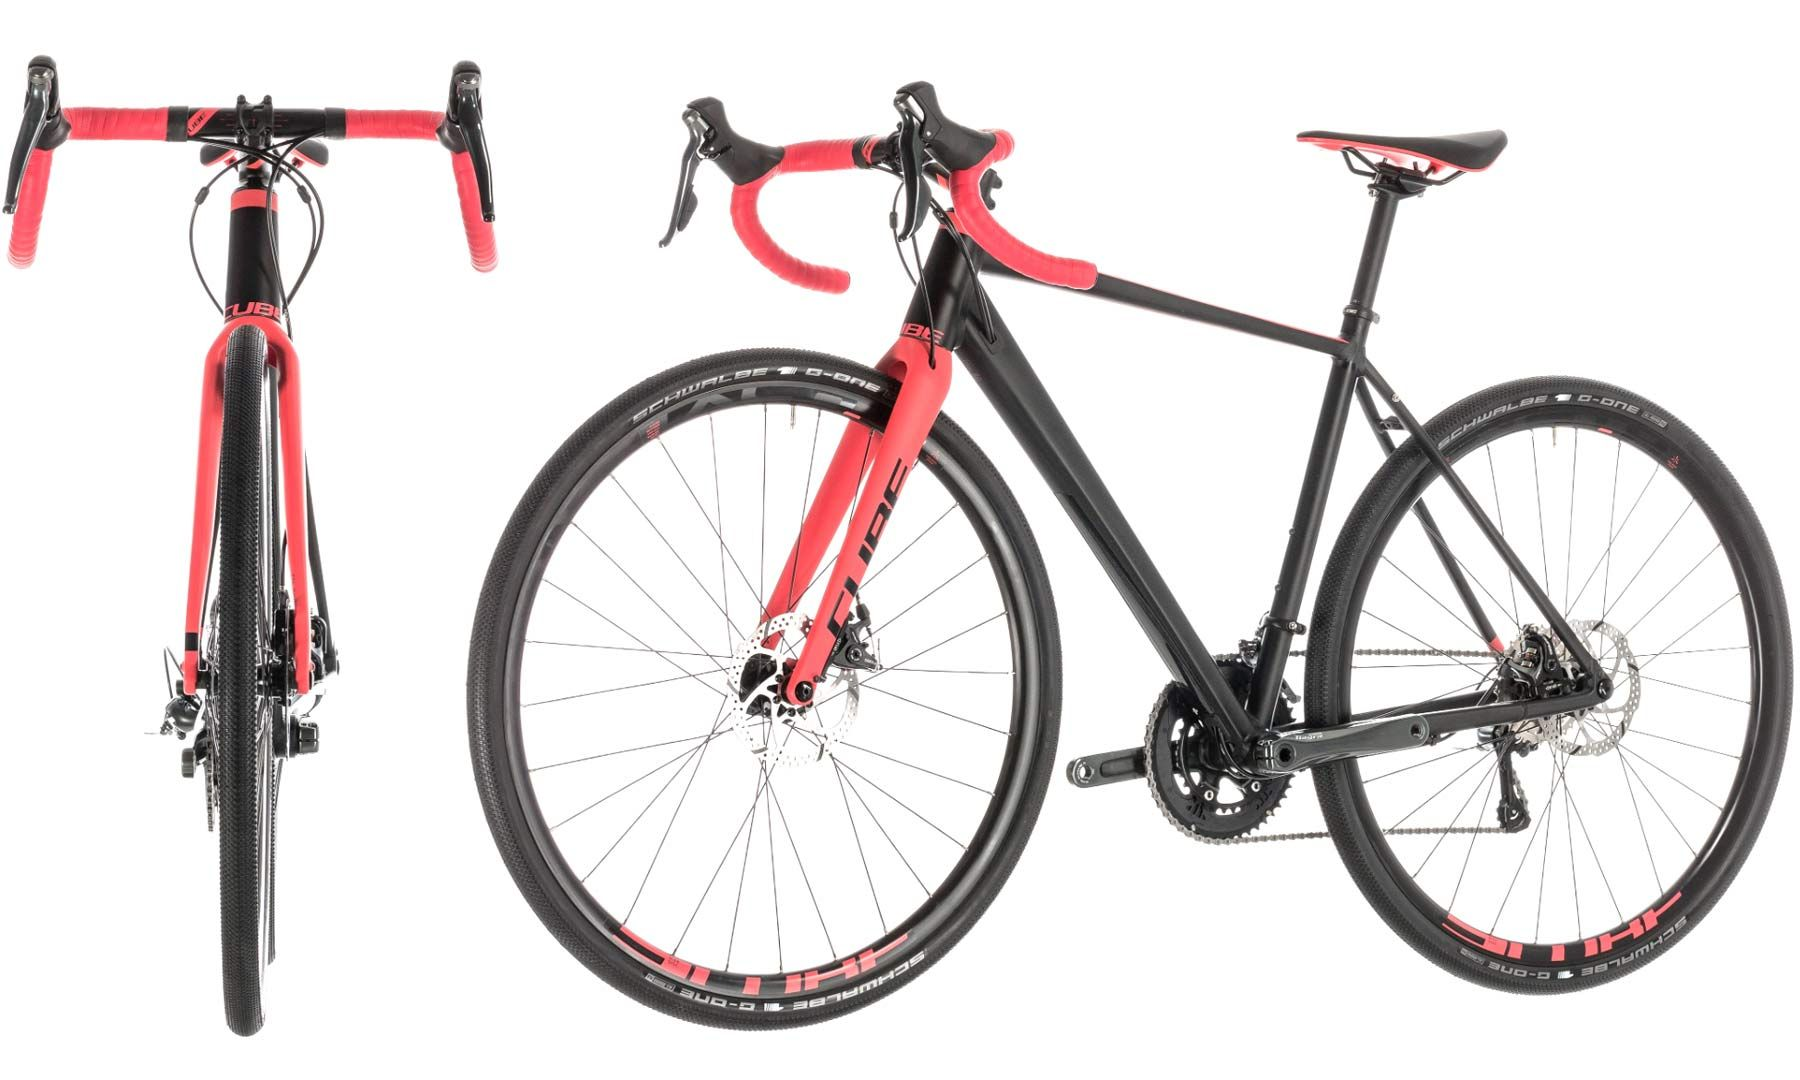 2019 Cube Nuroad Affordable Gravel Bike Gets New Women Touring